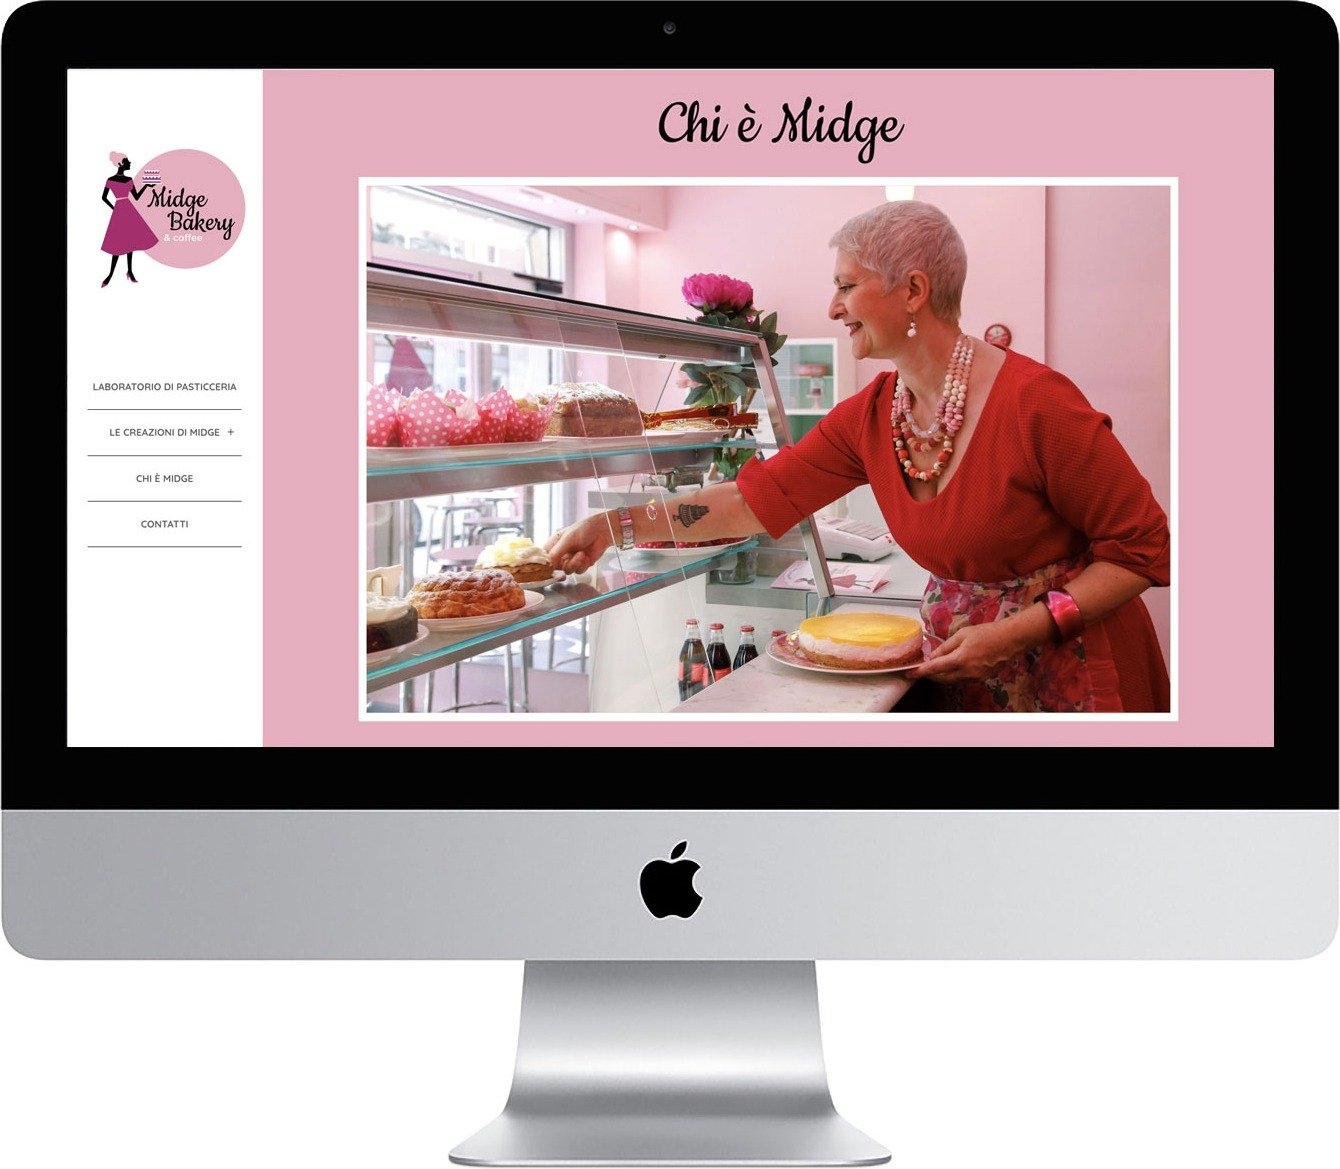 boombng design midge bakery websiyte 1 1